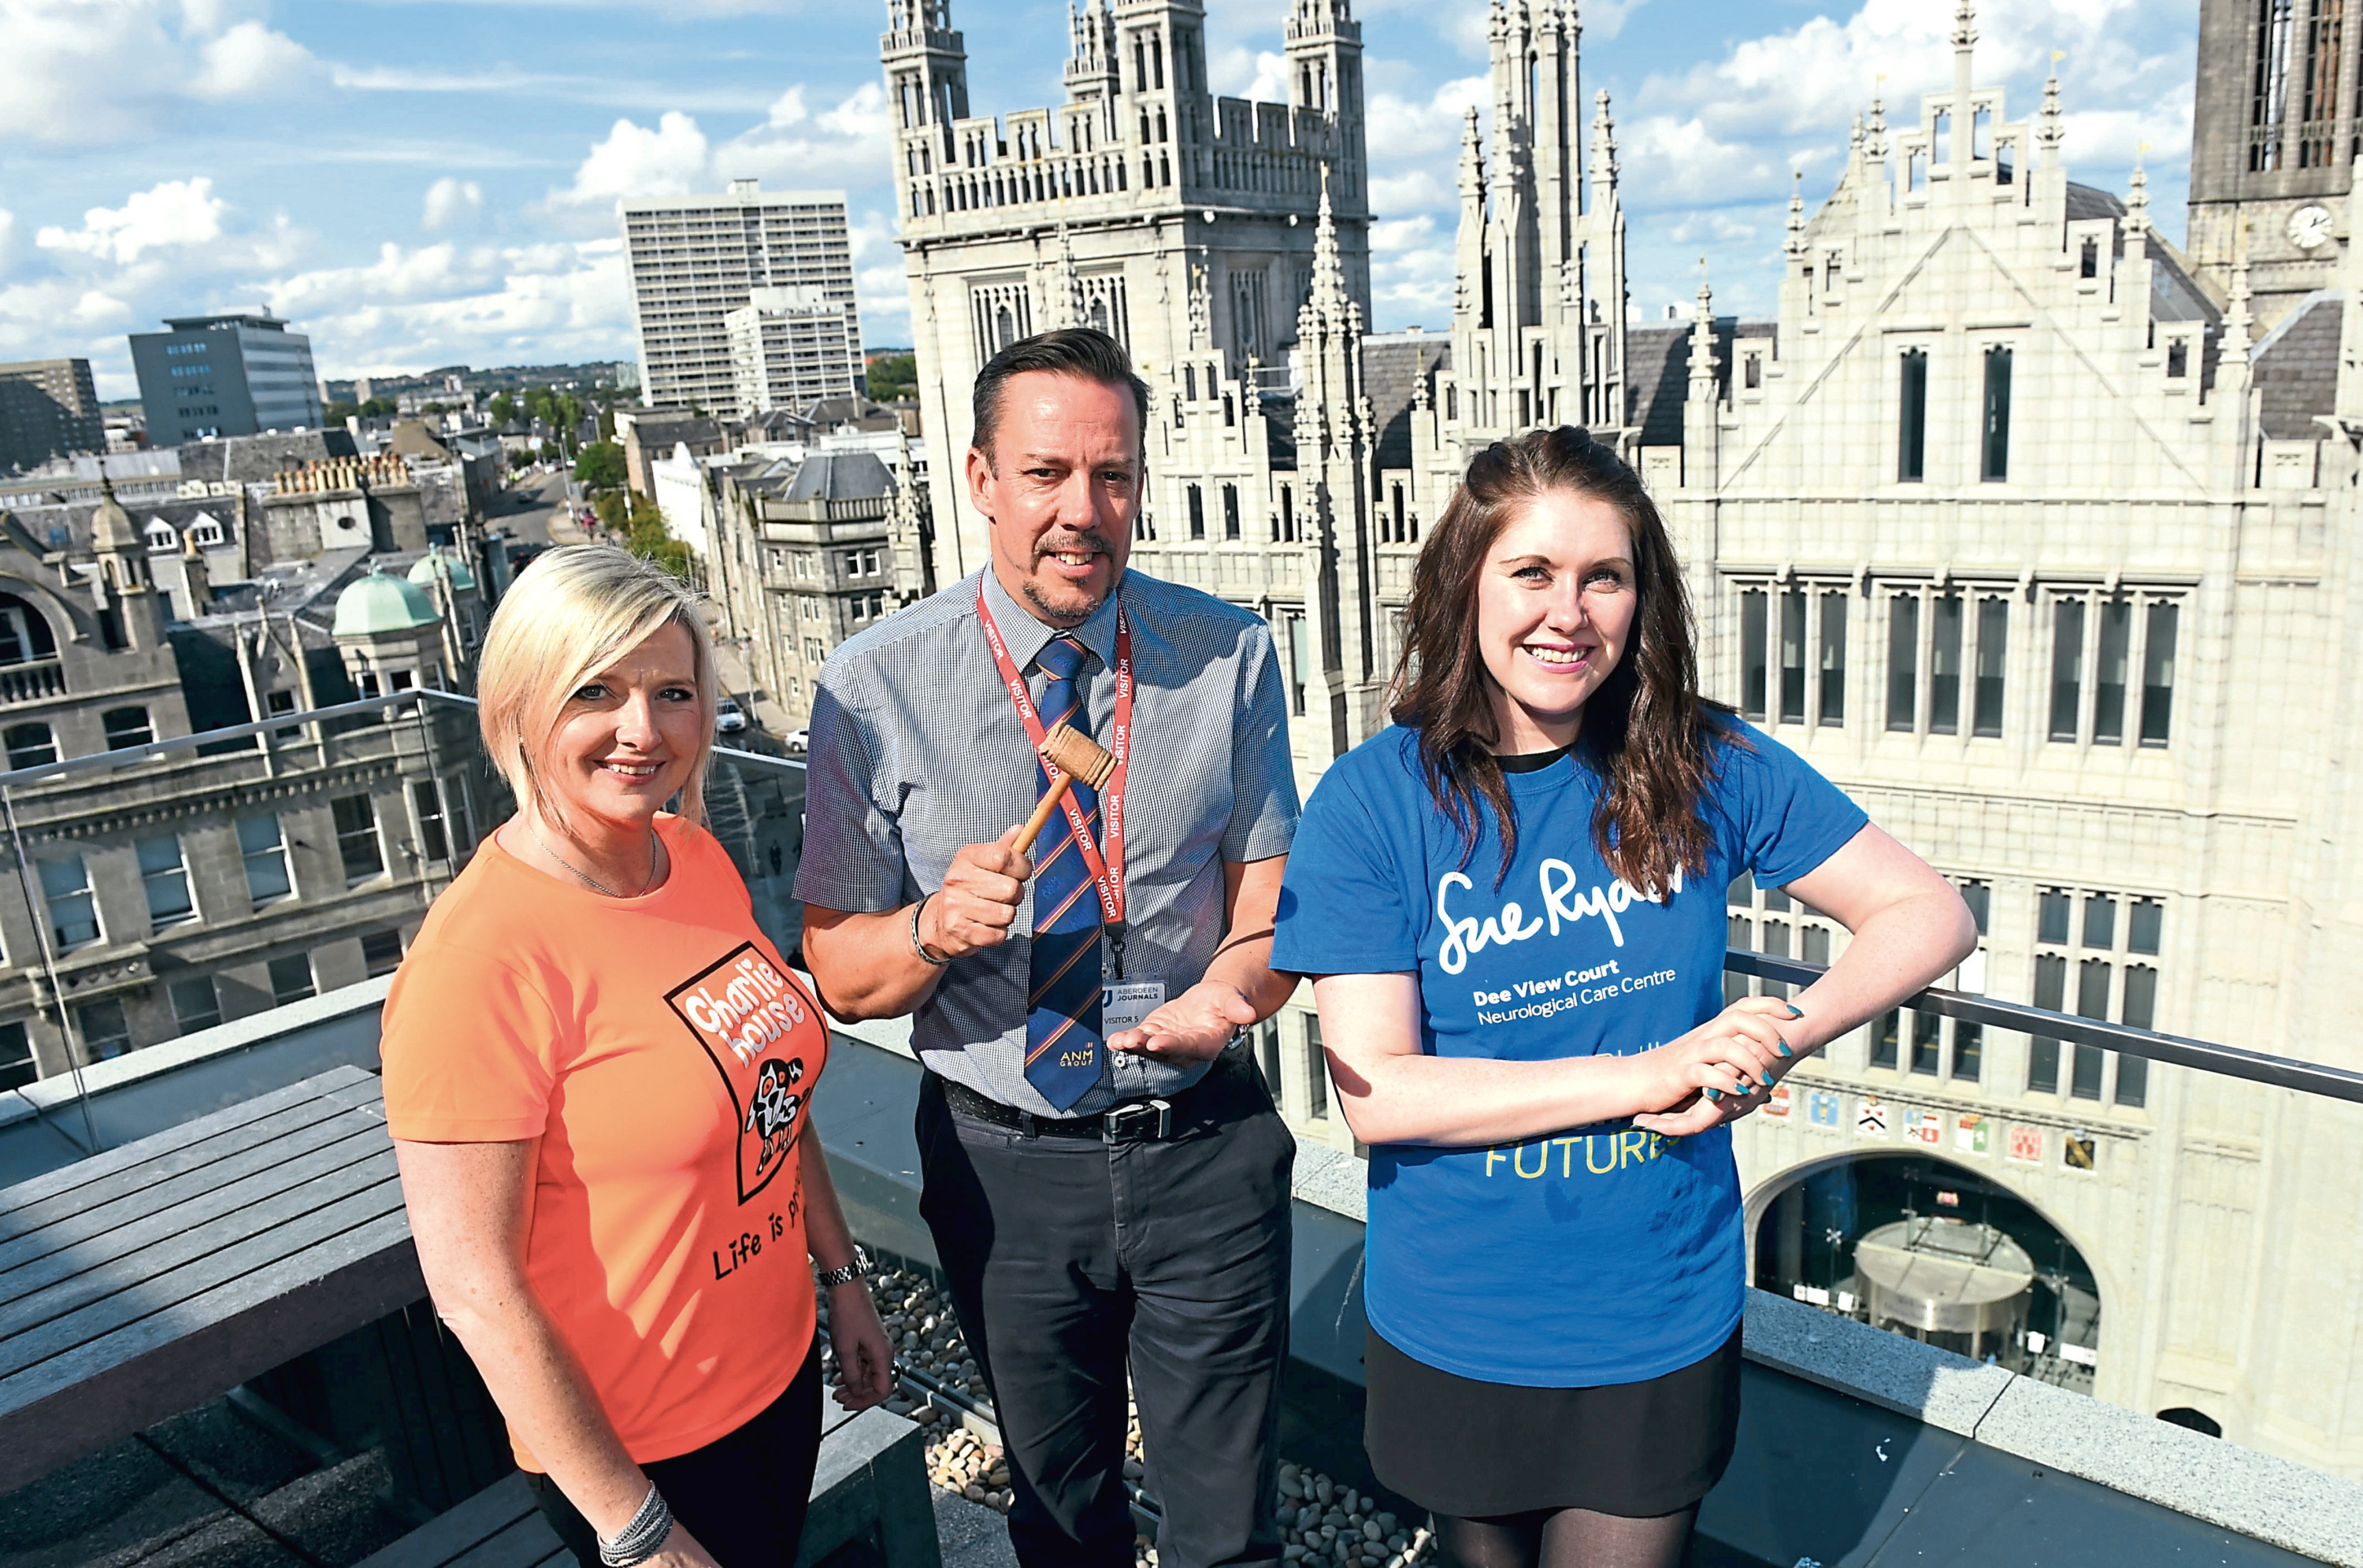 Lynn Batham from Charlie House, Neil Simpson and Emma Leiper-Finlayson, Sue Ryder